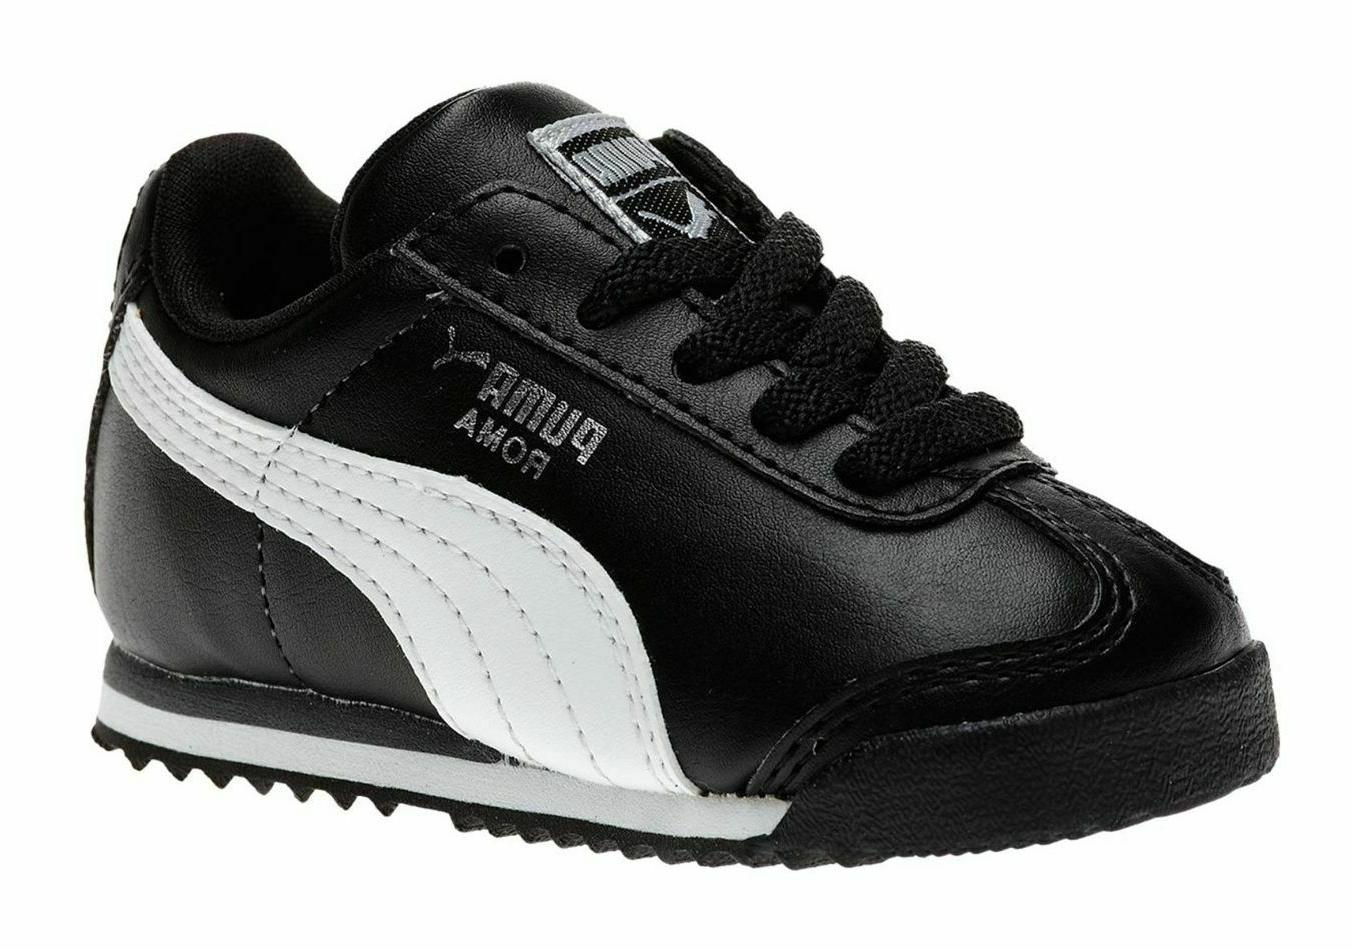 PUMA Roma Black, White, Silver Toddler Kids Sneakers Tennis